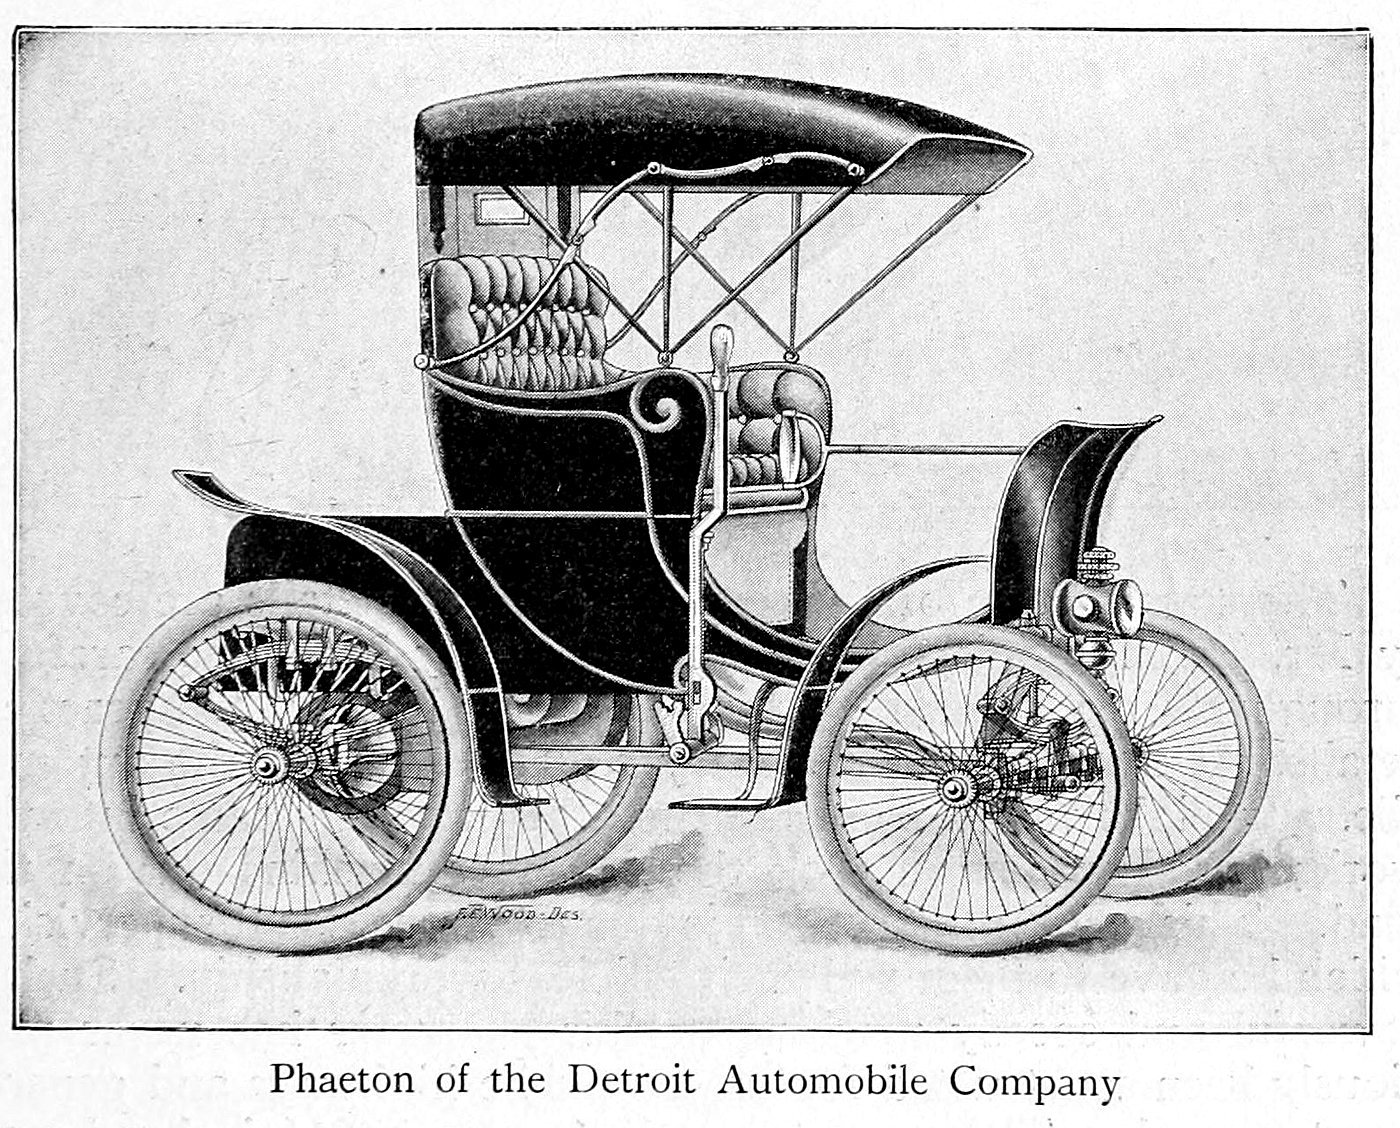 1900s Touring cart of the Detroit Automobile Company